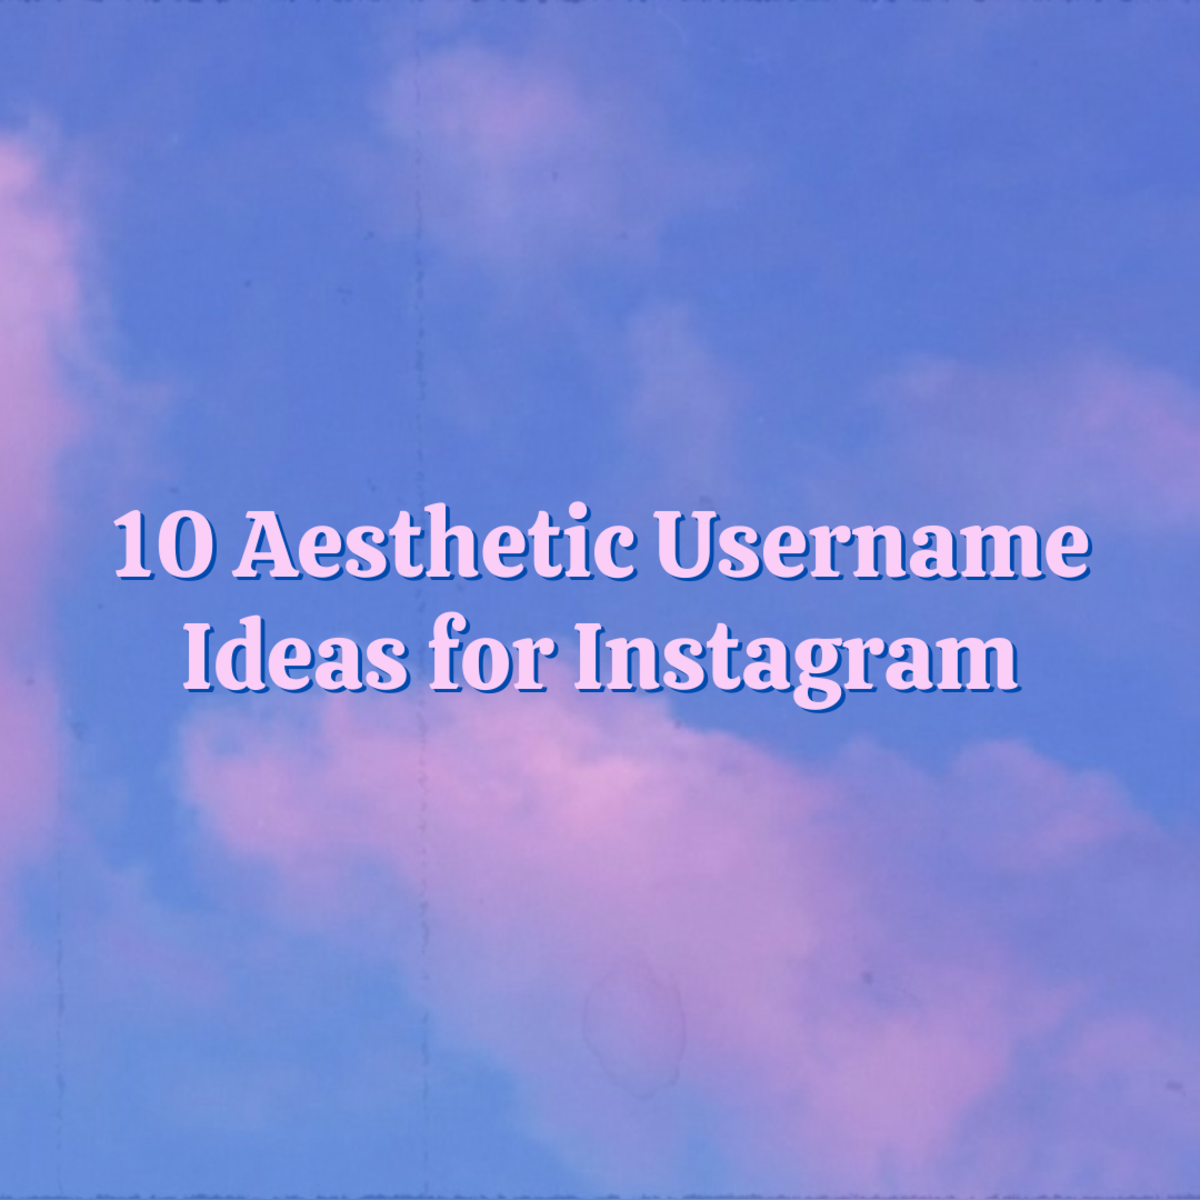 In this guide, discover 10 aesthetic username ideas for Instagram!